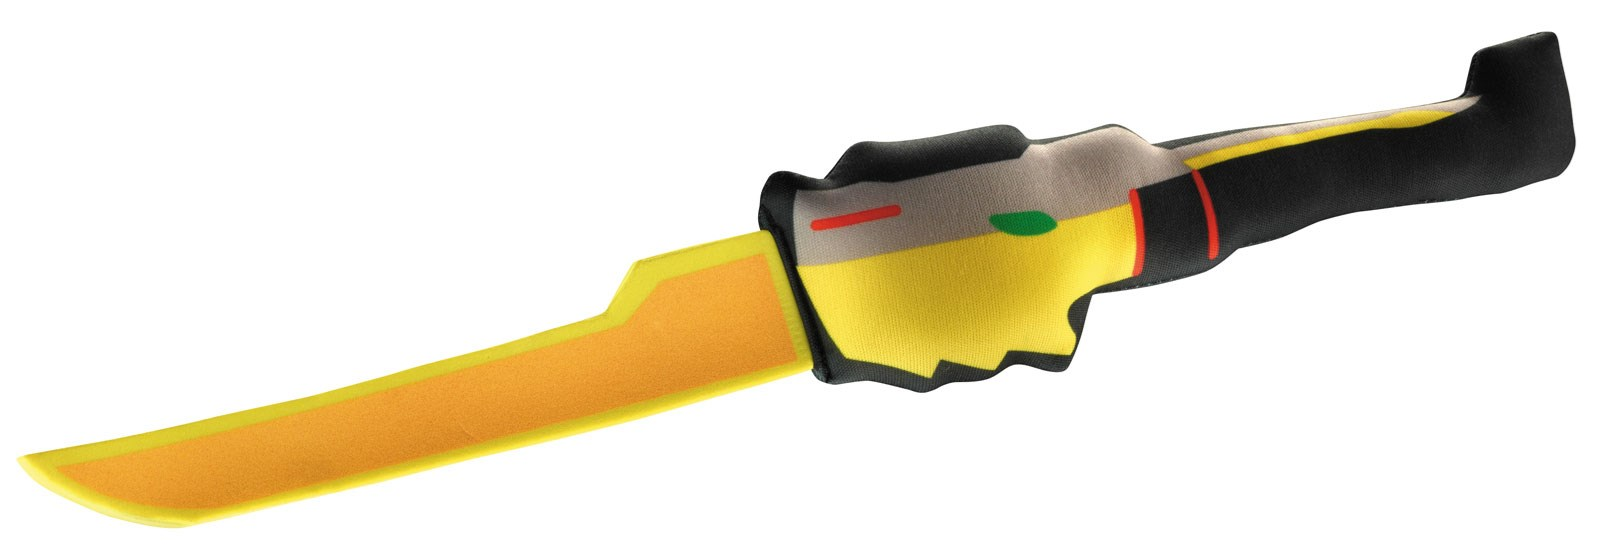 Power Rangers Dino Charge: Soft Beast Saber Weapon